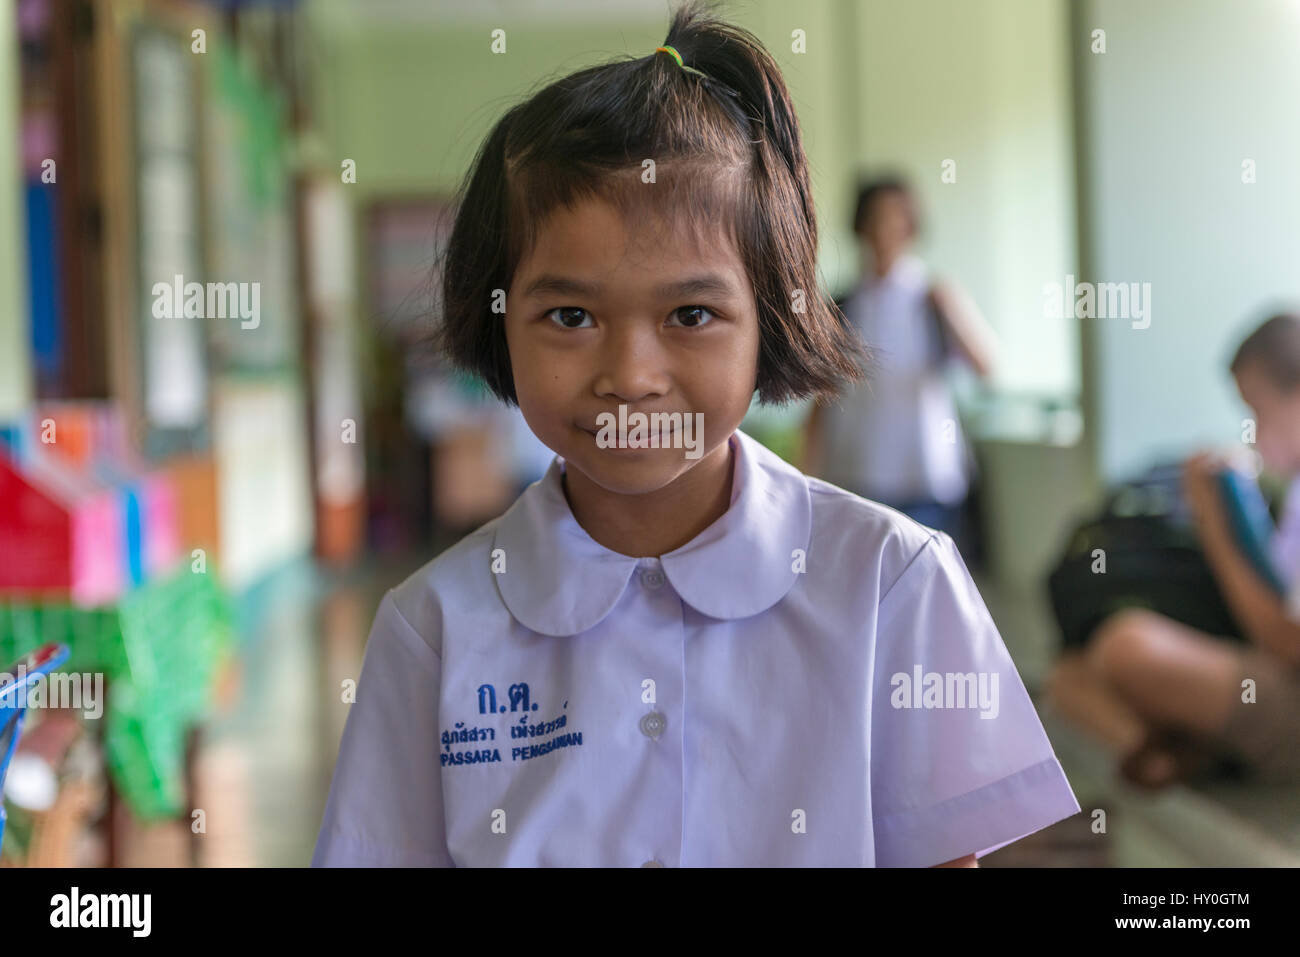 A Cute Girl Student Named Fasai In A Primary School In Phuket Thailand 10